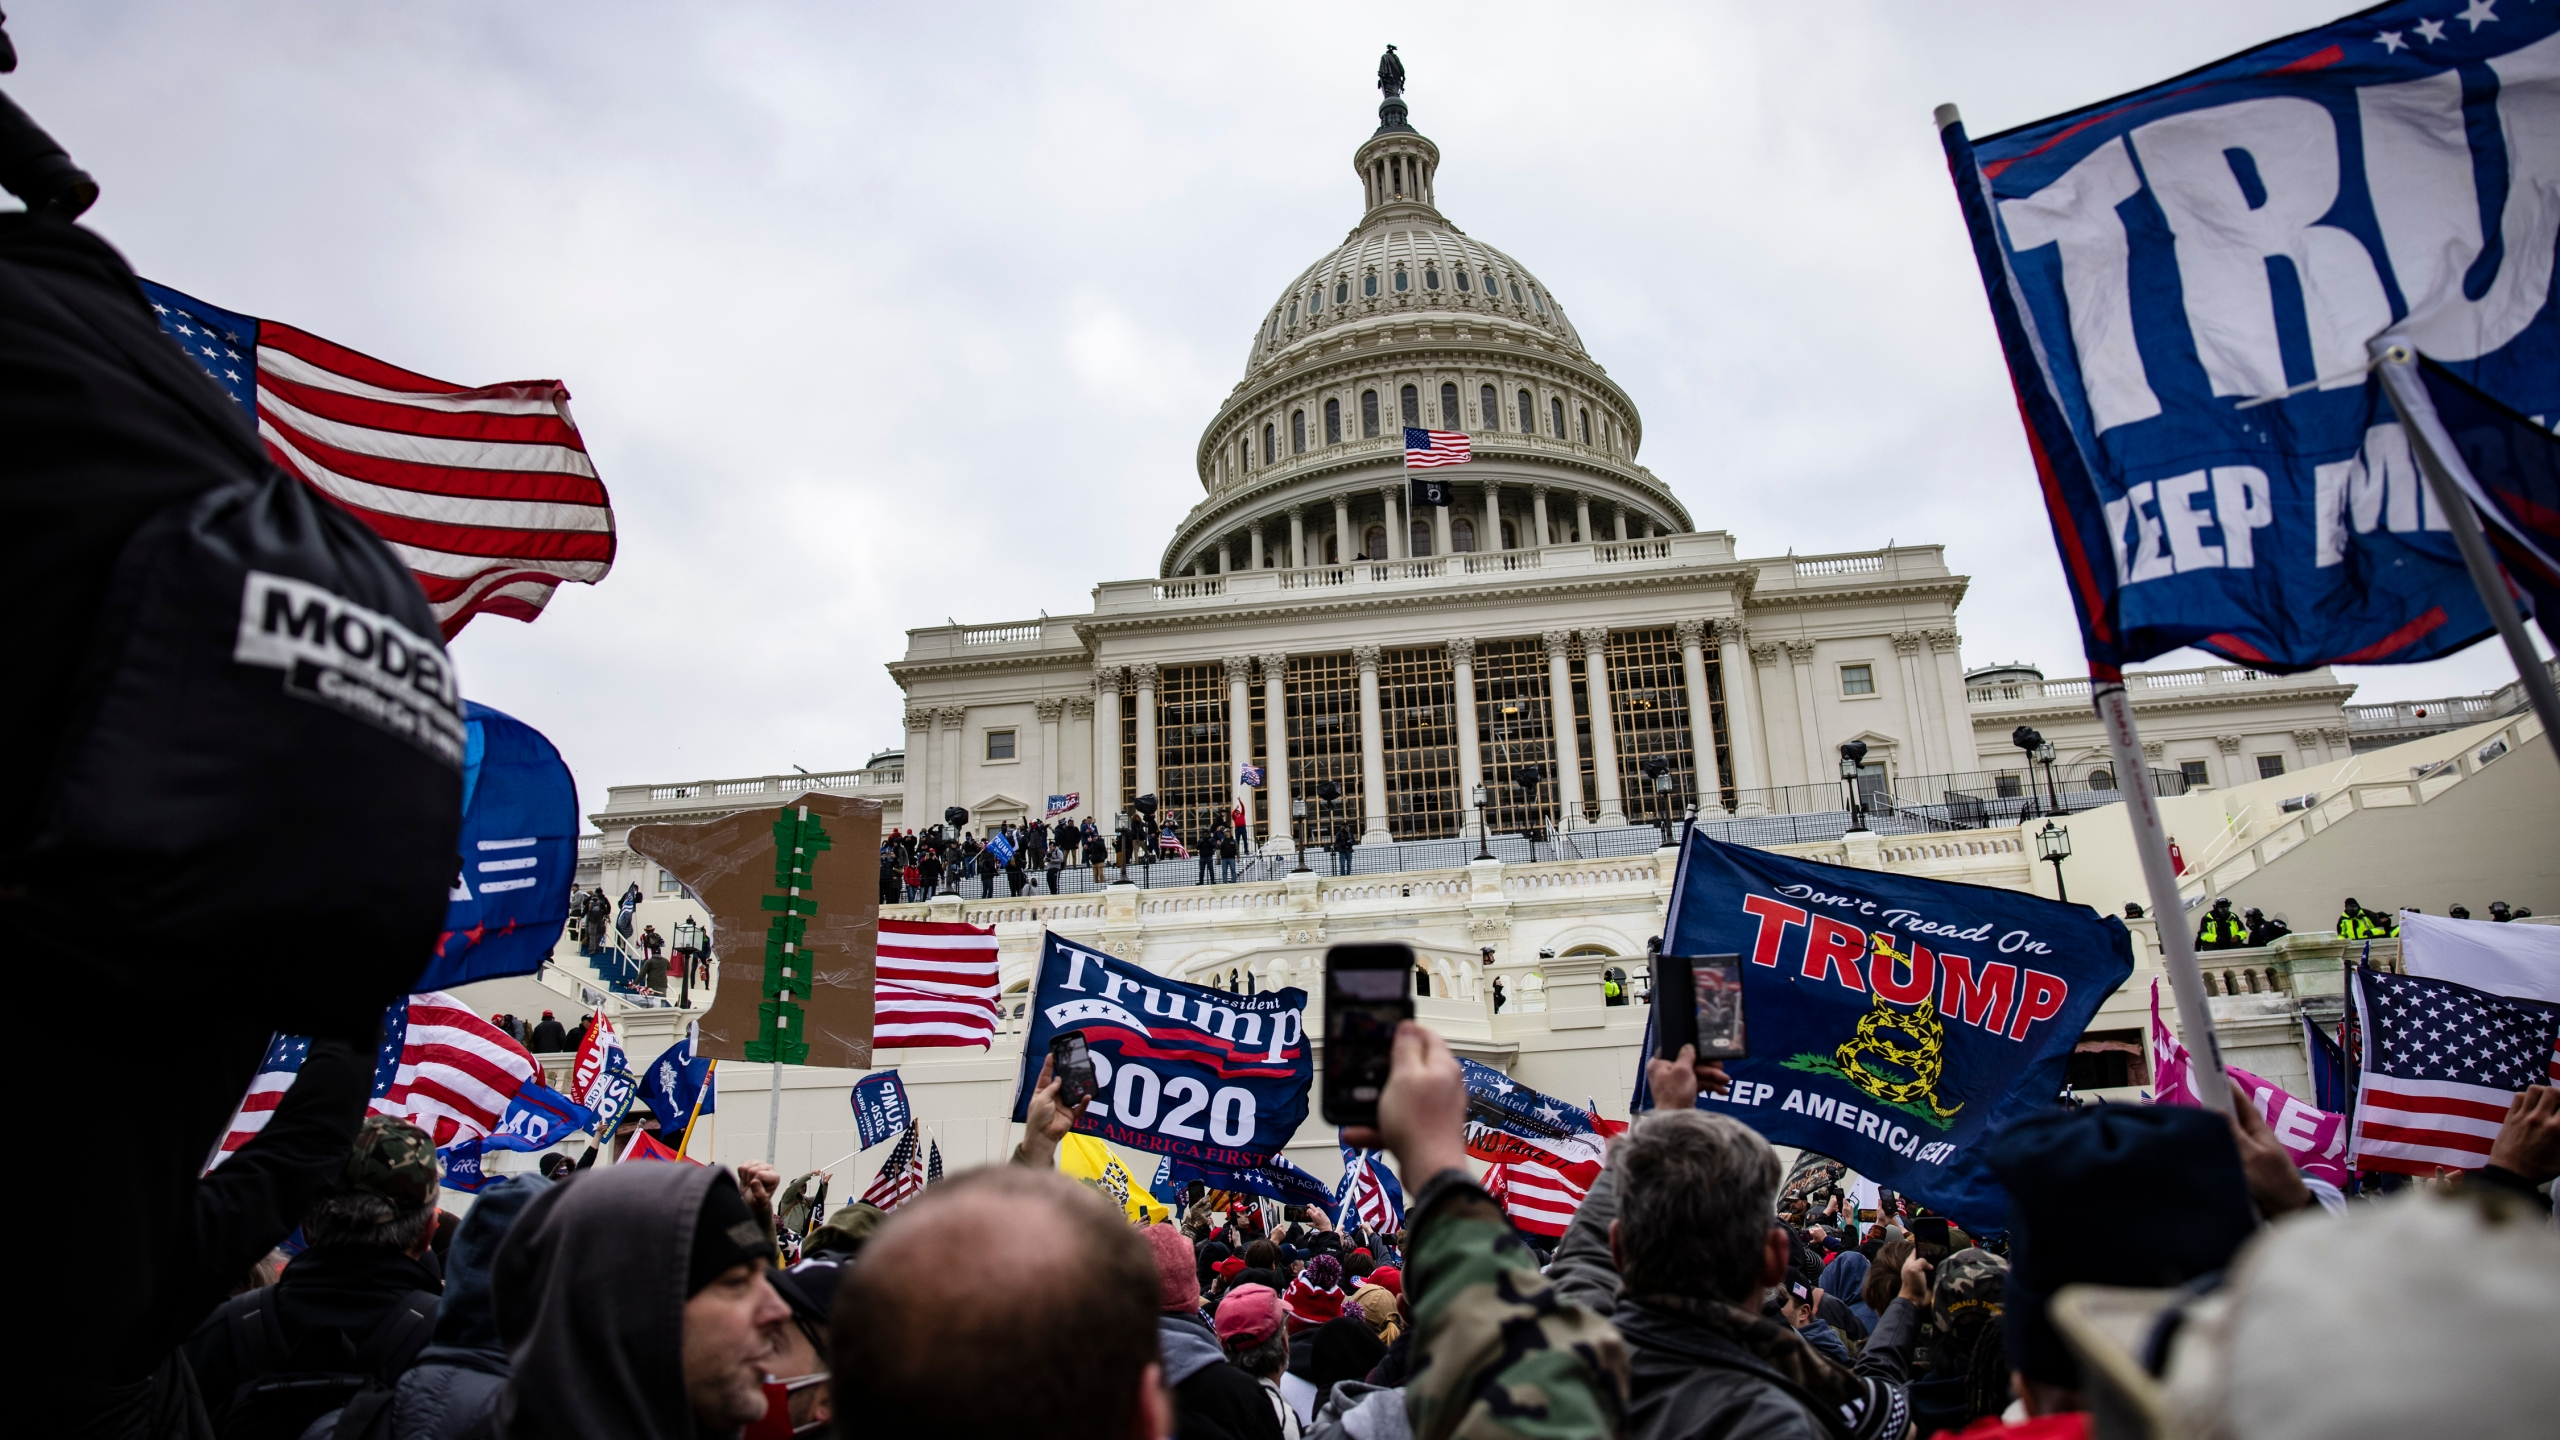 Pro-Trump supporters storm the U.S. Capitol following a rally with President Donald Trump on Jan. 6, 2021 in Washington, D.C. Trump supporters gathered in the nation's capital today to protest the ratification of President-elect Joe Biden's Electoral College victory over President Trump in the 2020 election. (Samuel Corum/Getty Images)